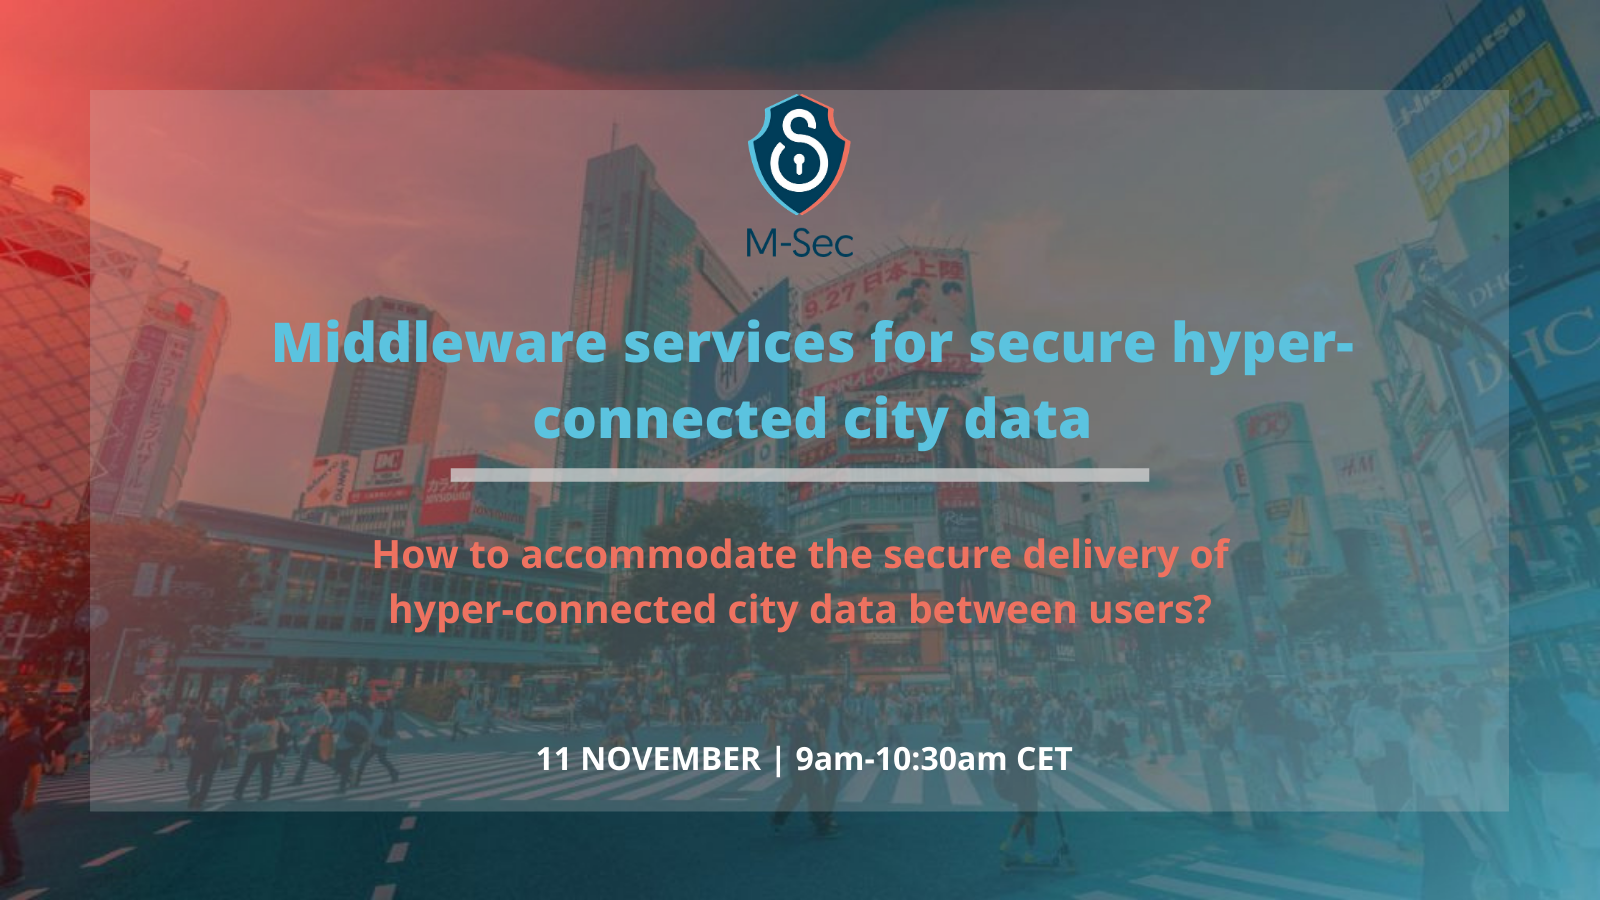 Want to know more about how to accommodate the secure delivery of hyper-connected city data between users?